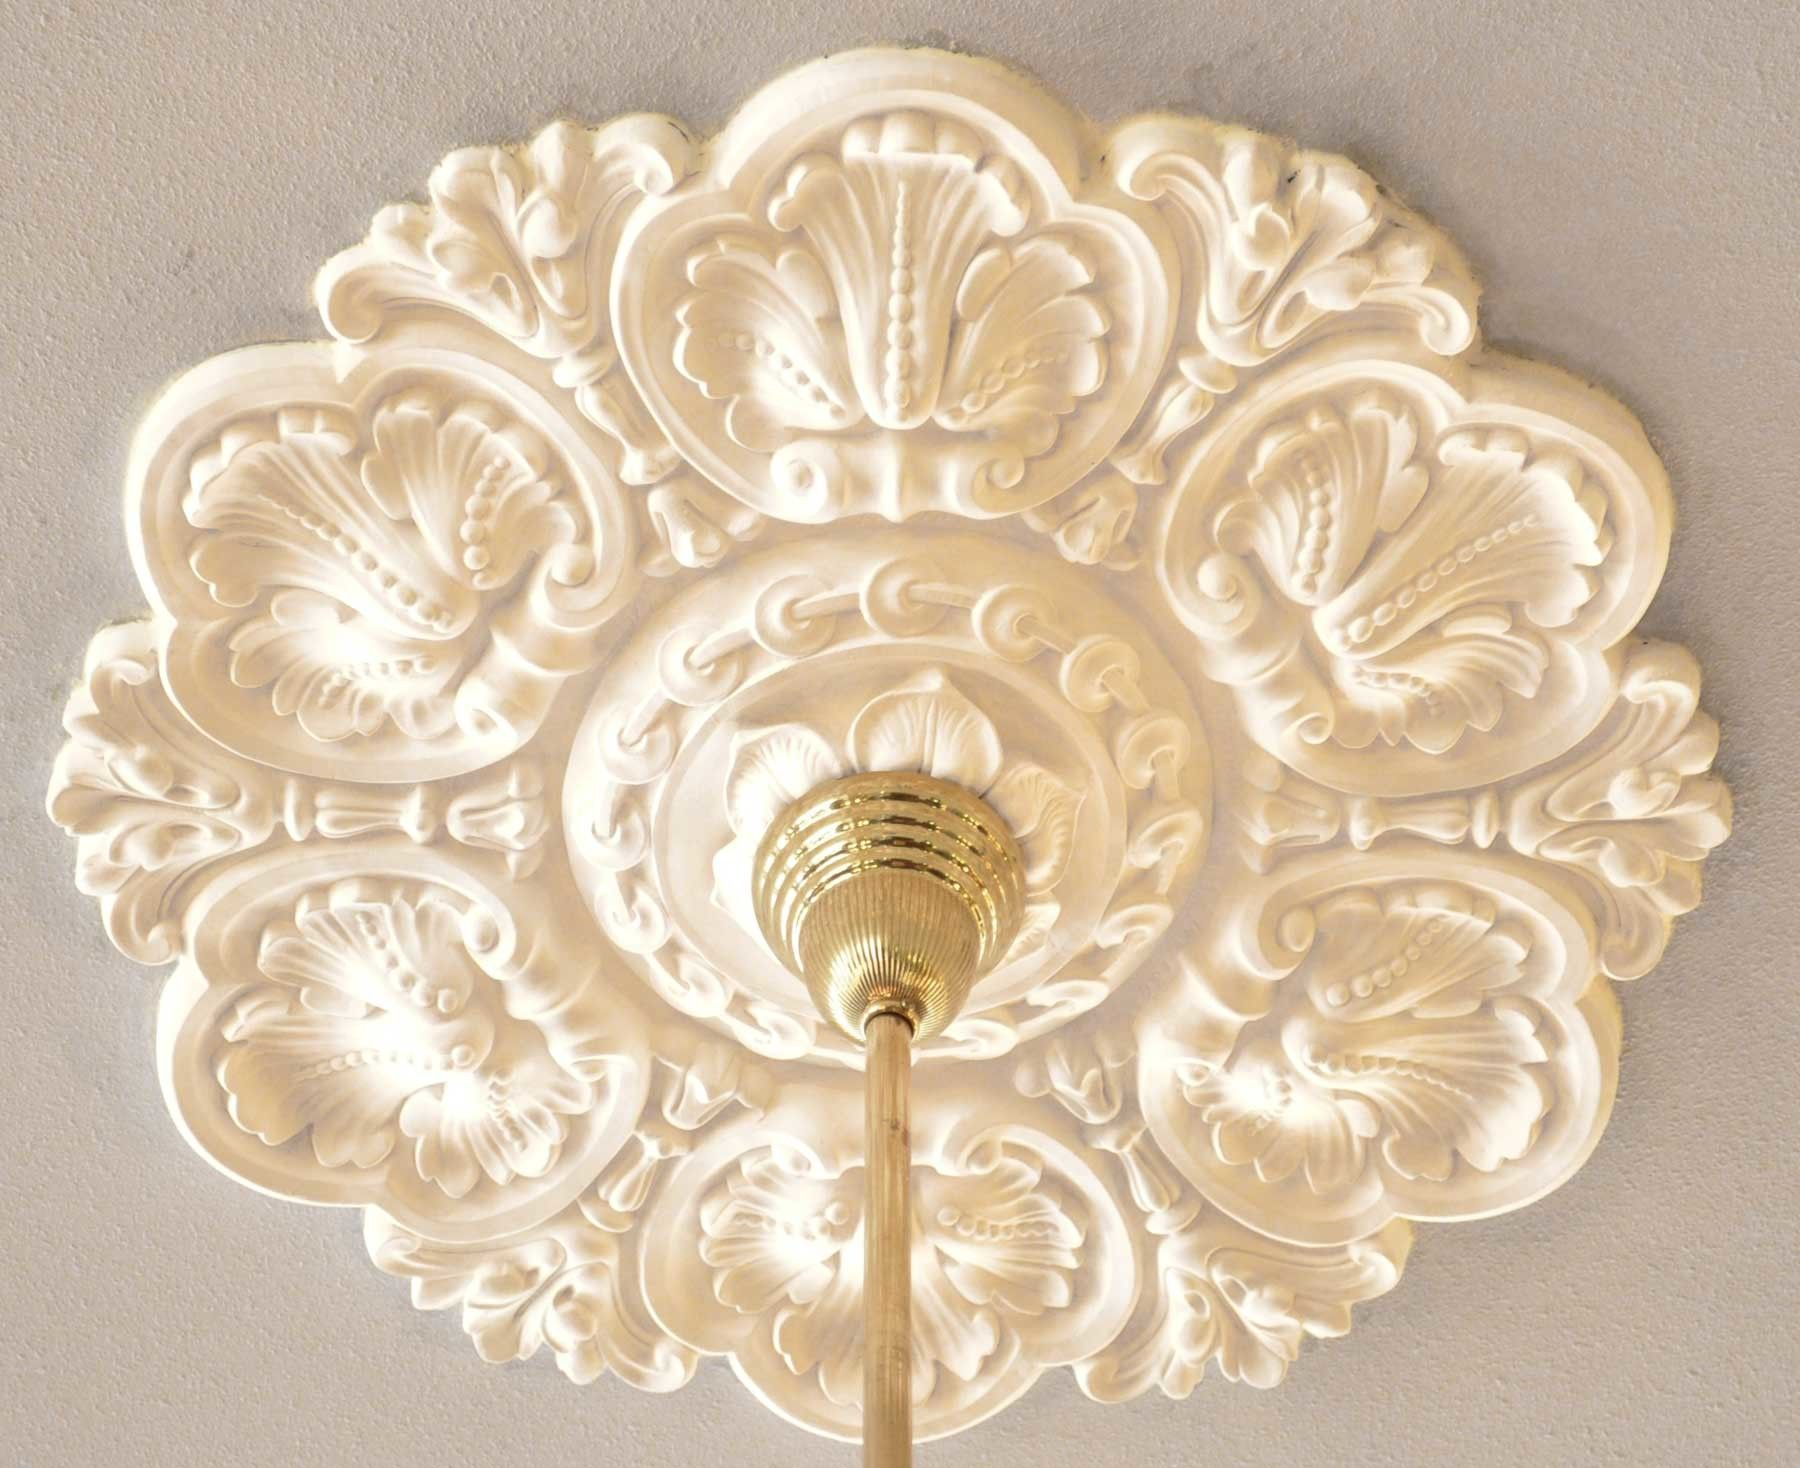 Recreated Acanthus 30 Diameter Real Plaster Ceiling Medallion Zk 15 Ceiling Medallions Plaster Ceiling Victorian Ceiling Medallions